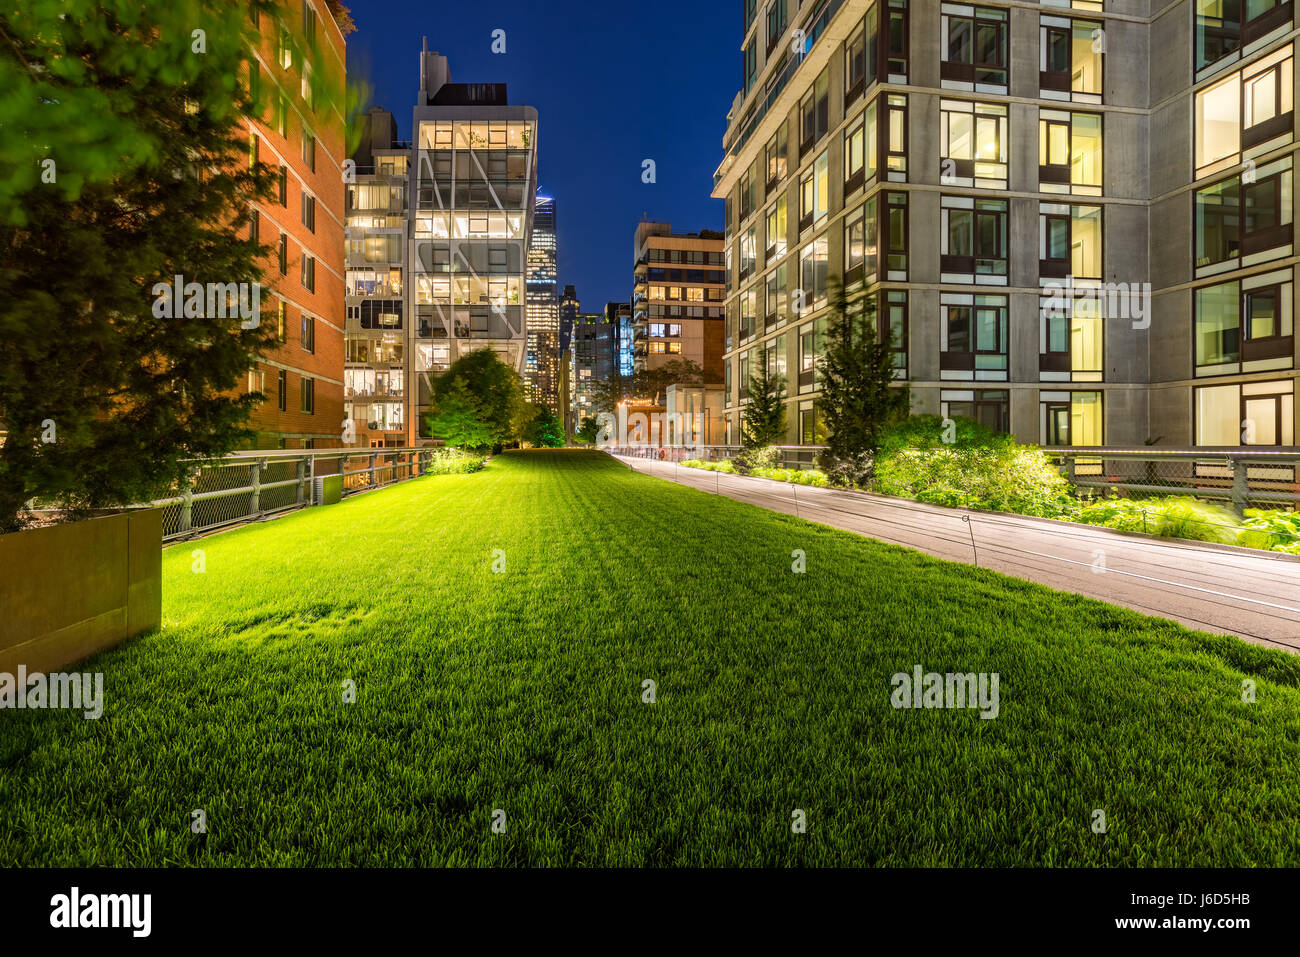 Highline promenade and lawn at twilight with city lights in the heart of Chelsea. Manhattan, New York City - Stock Image